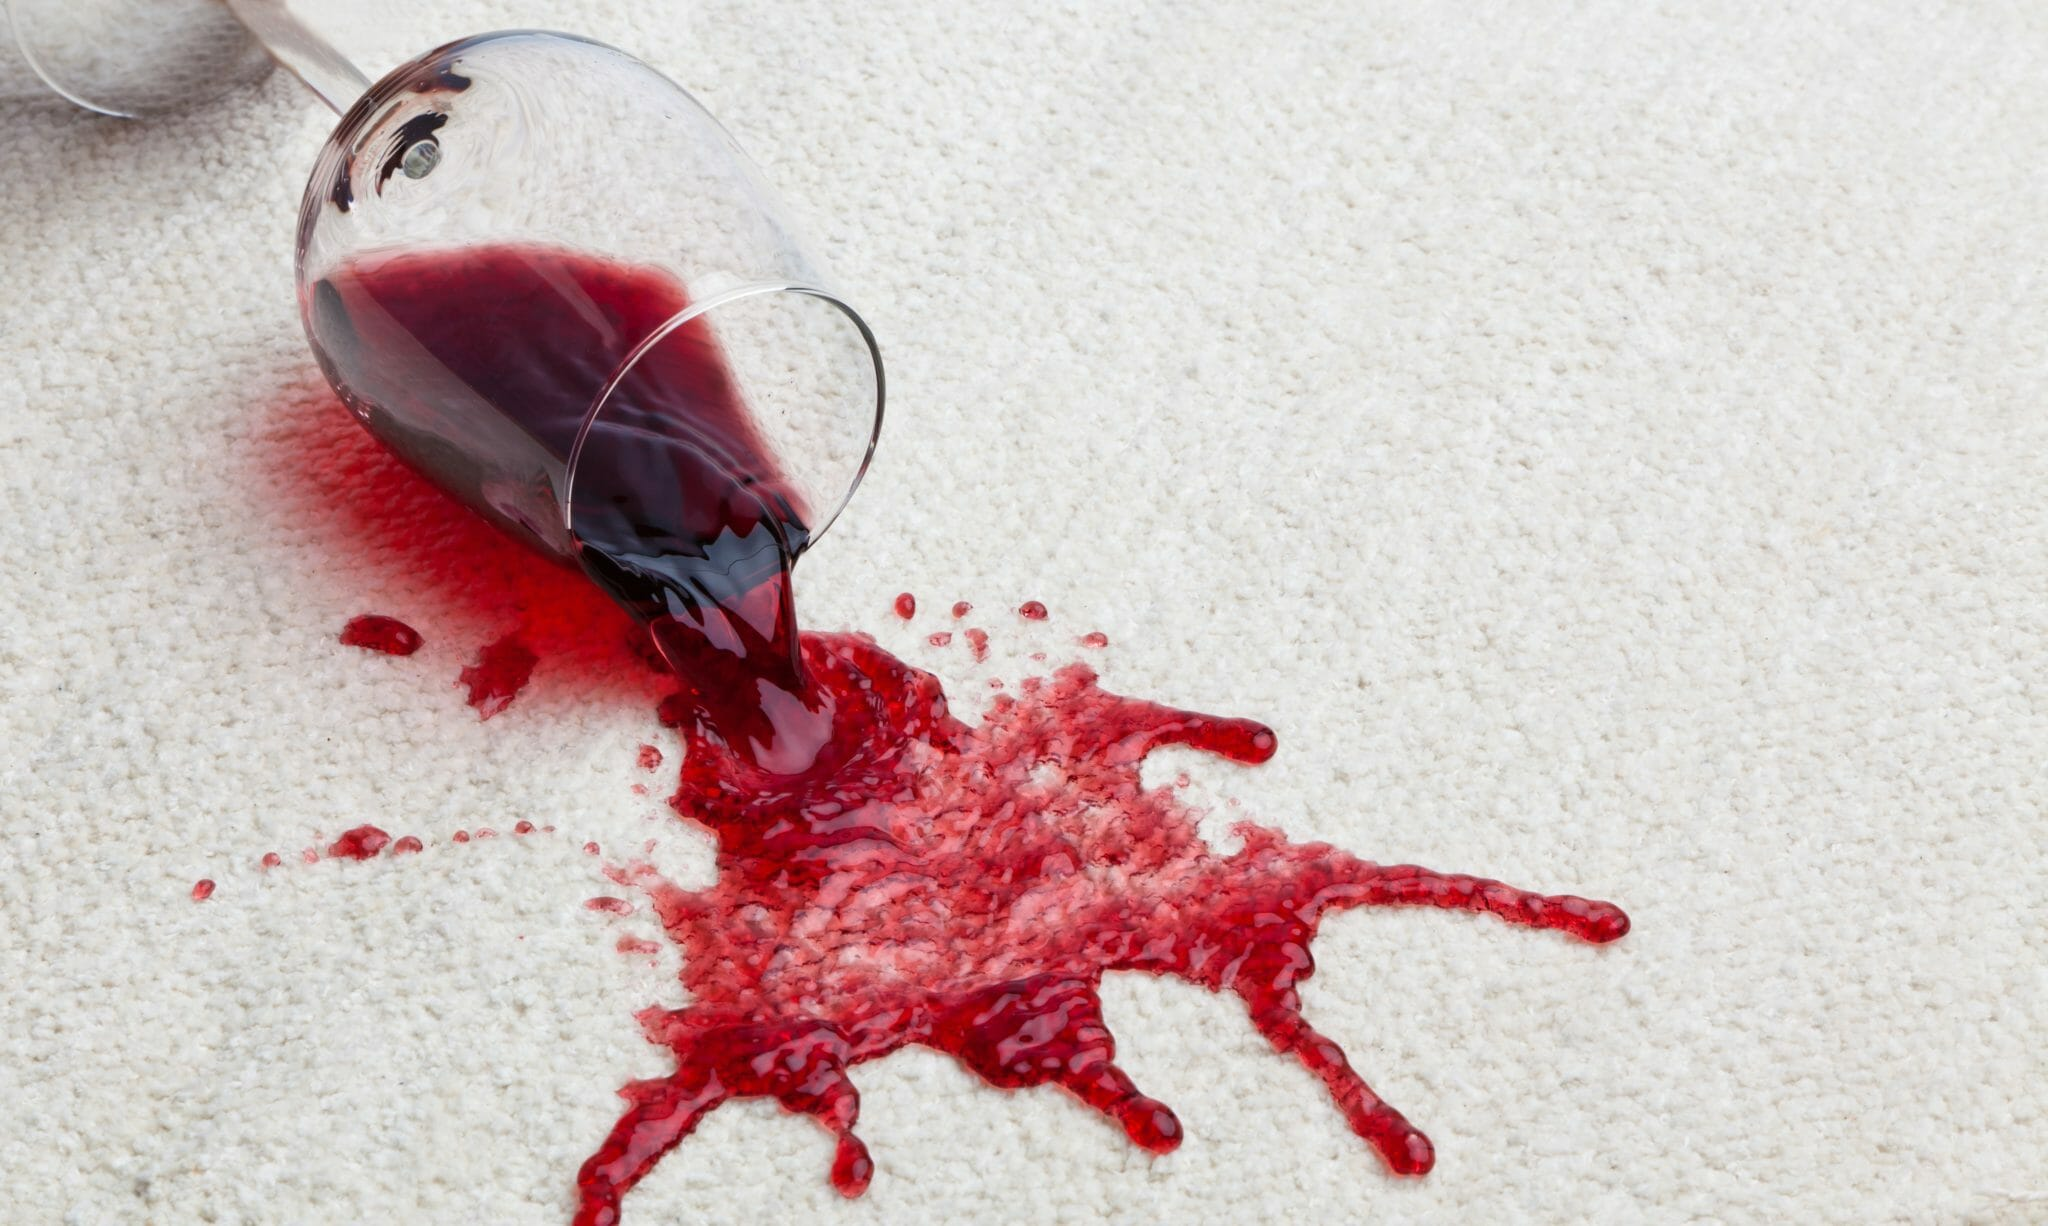 Wine glass with red wine spilling on the white carpet